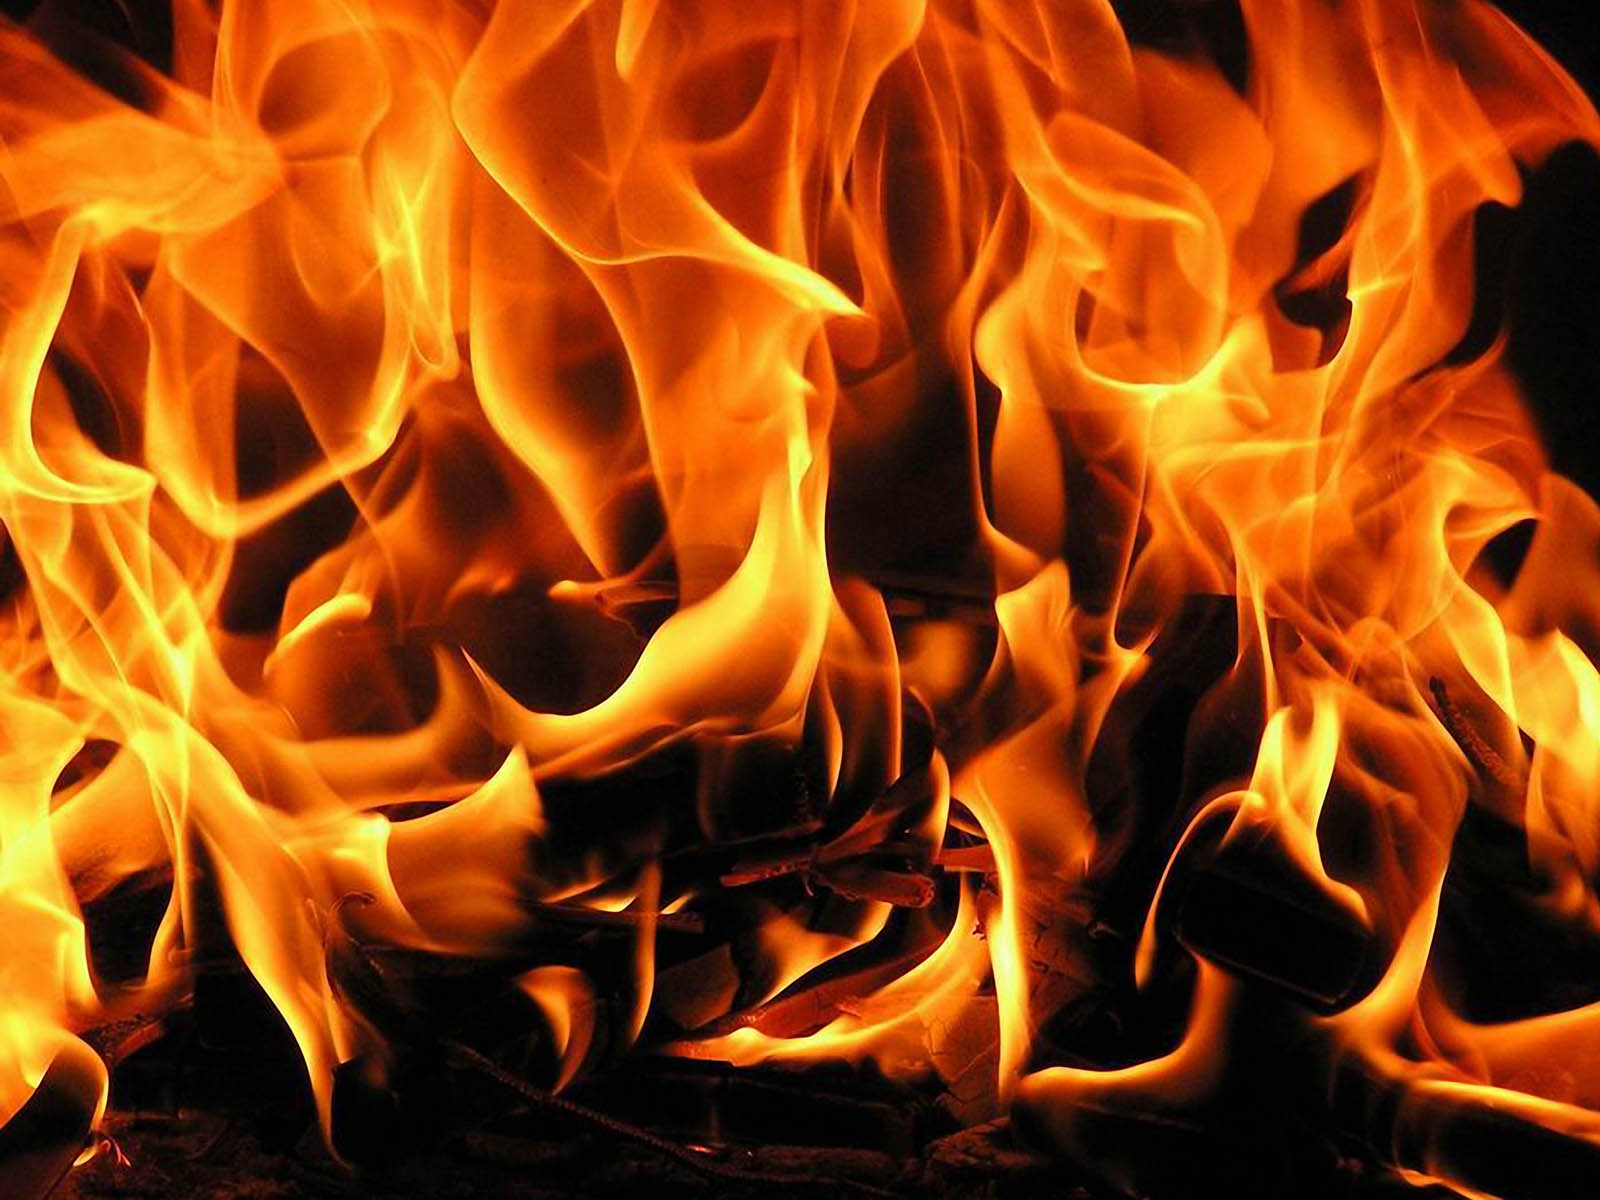 Tag Fire Flames Images Photos Pictures Wallpapers and Backgrounds 1600x1200